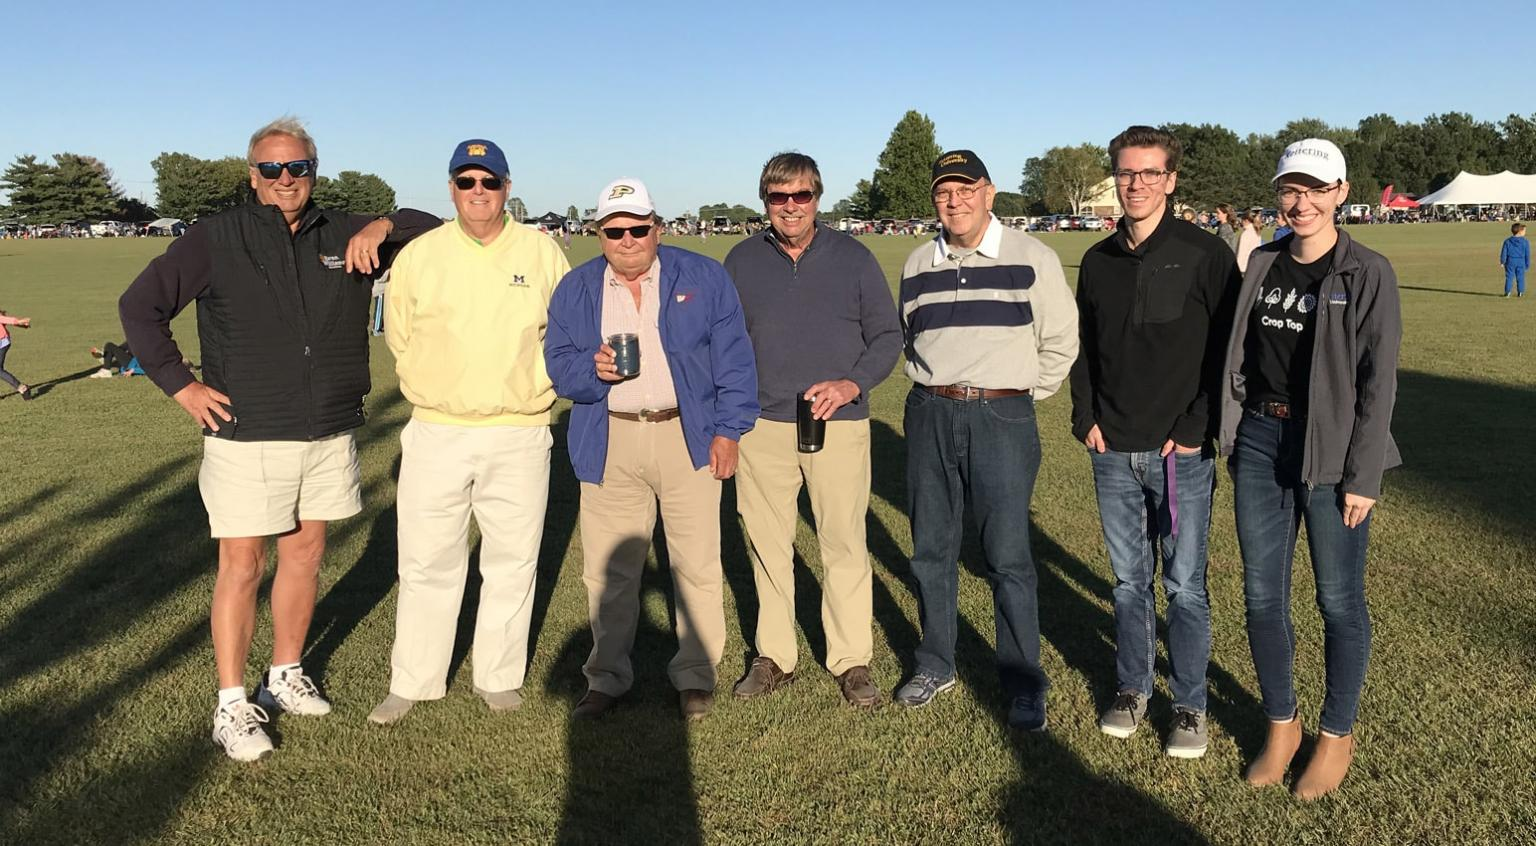 Indy Polo Event - Whitestown, Indiana